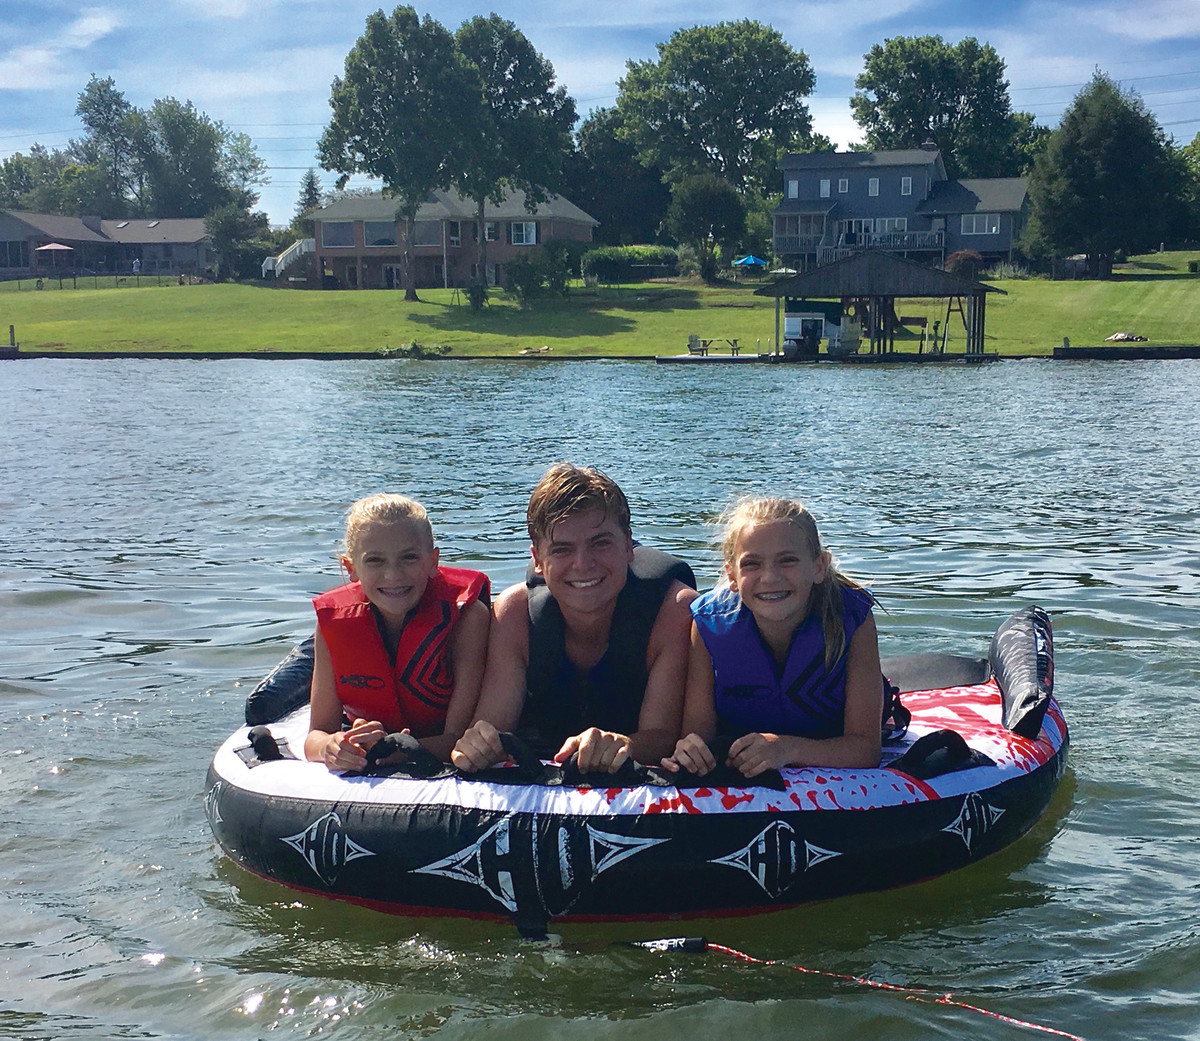 Tyler is flanked by Kendall (left) and Camryn as they prepare for a tube ride.